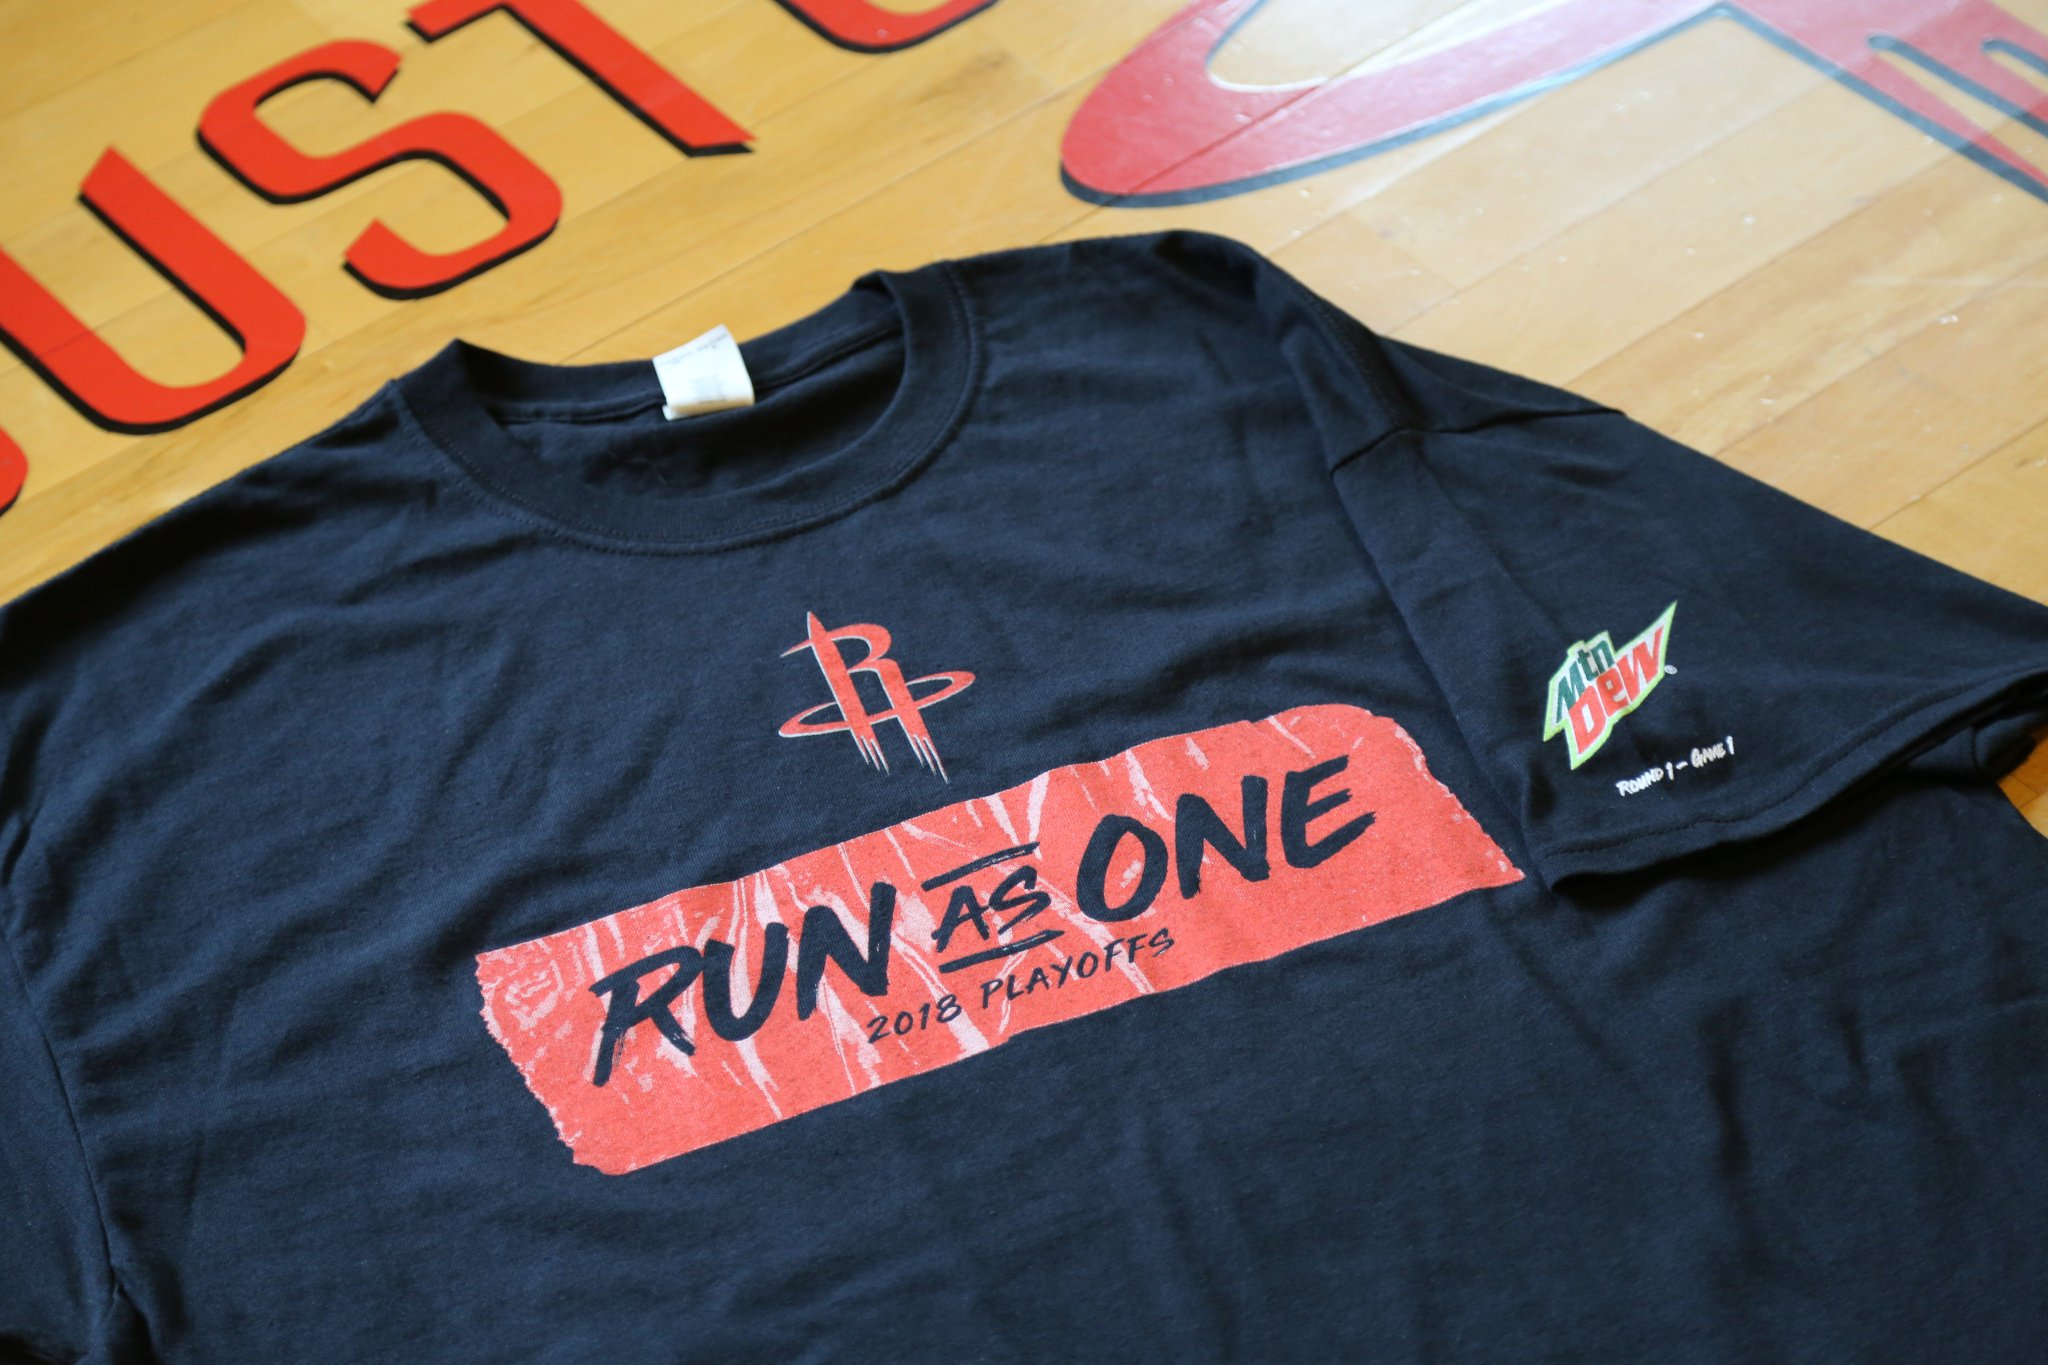 All fans attending the game tomorrow will receive this #RunAsOne t-shirt courtesy of @MountainDew! �� https://t.co/5cph81GtiL